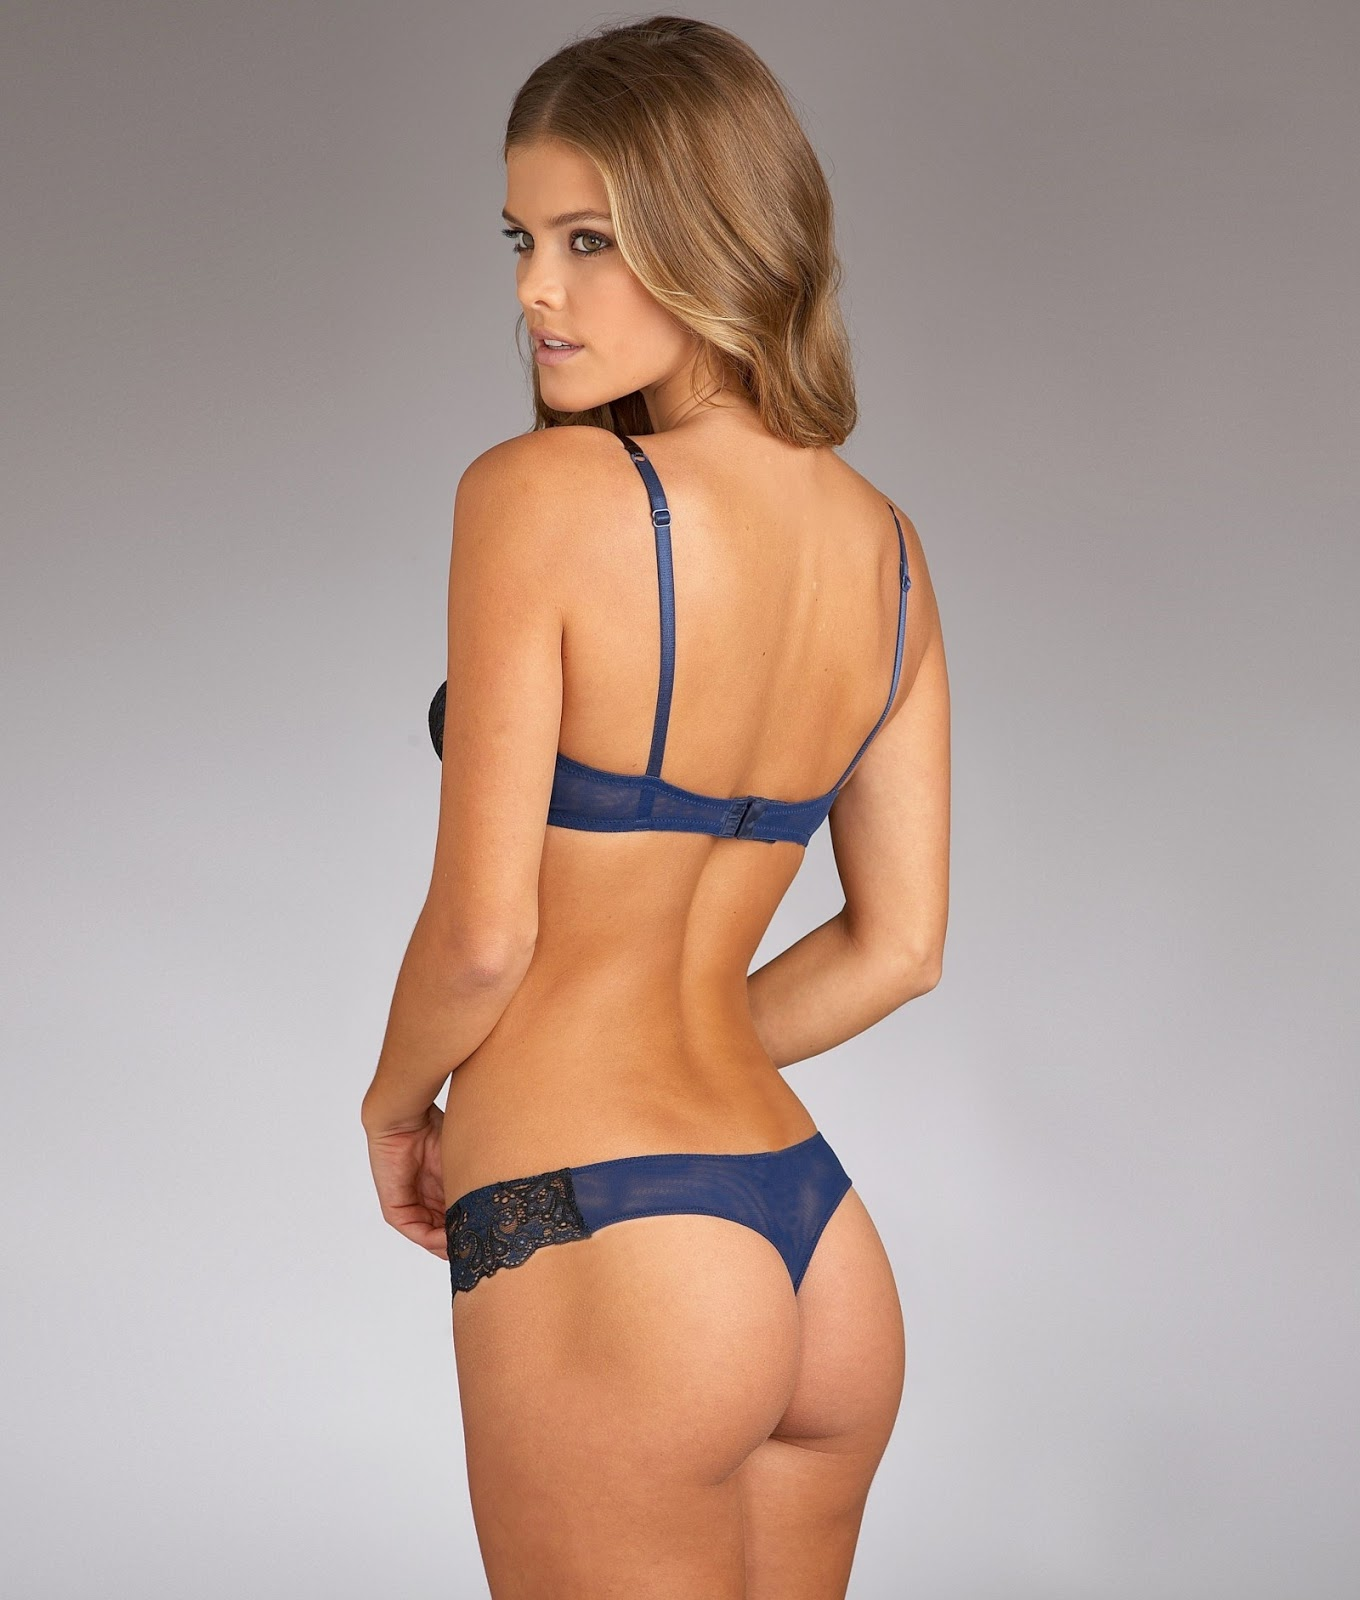 Nina Agdal hot in lingerie